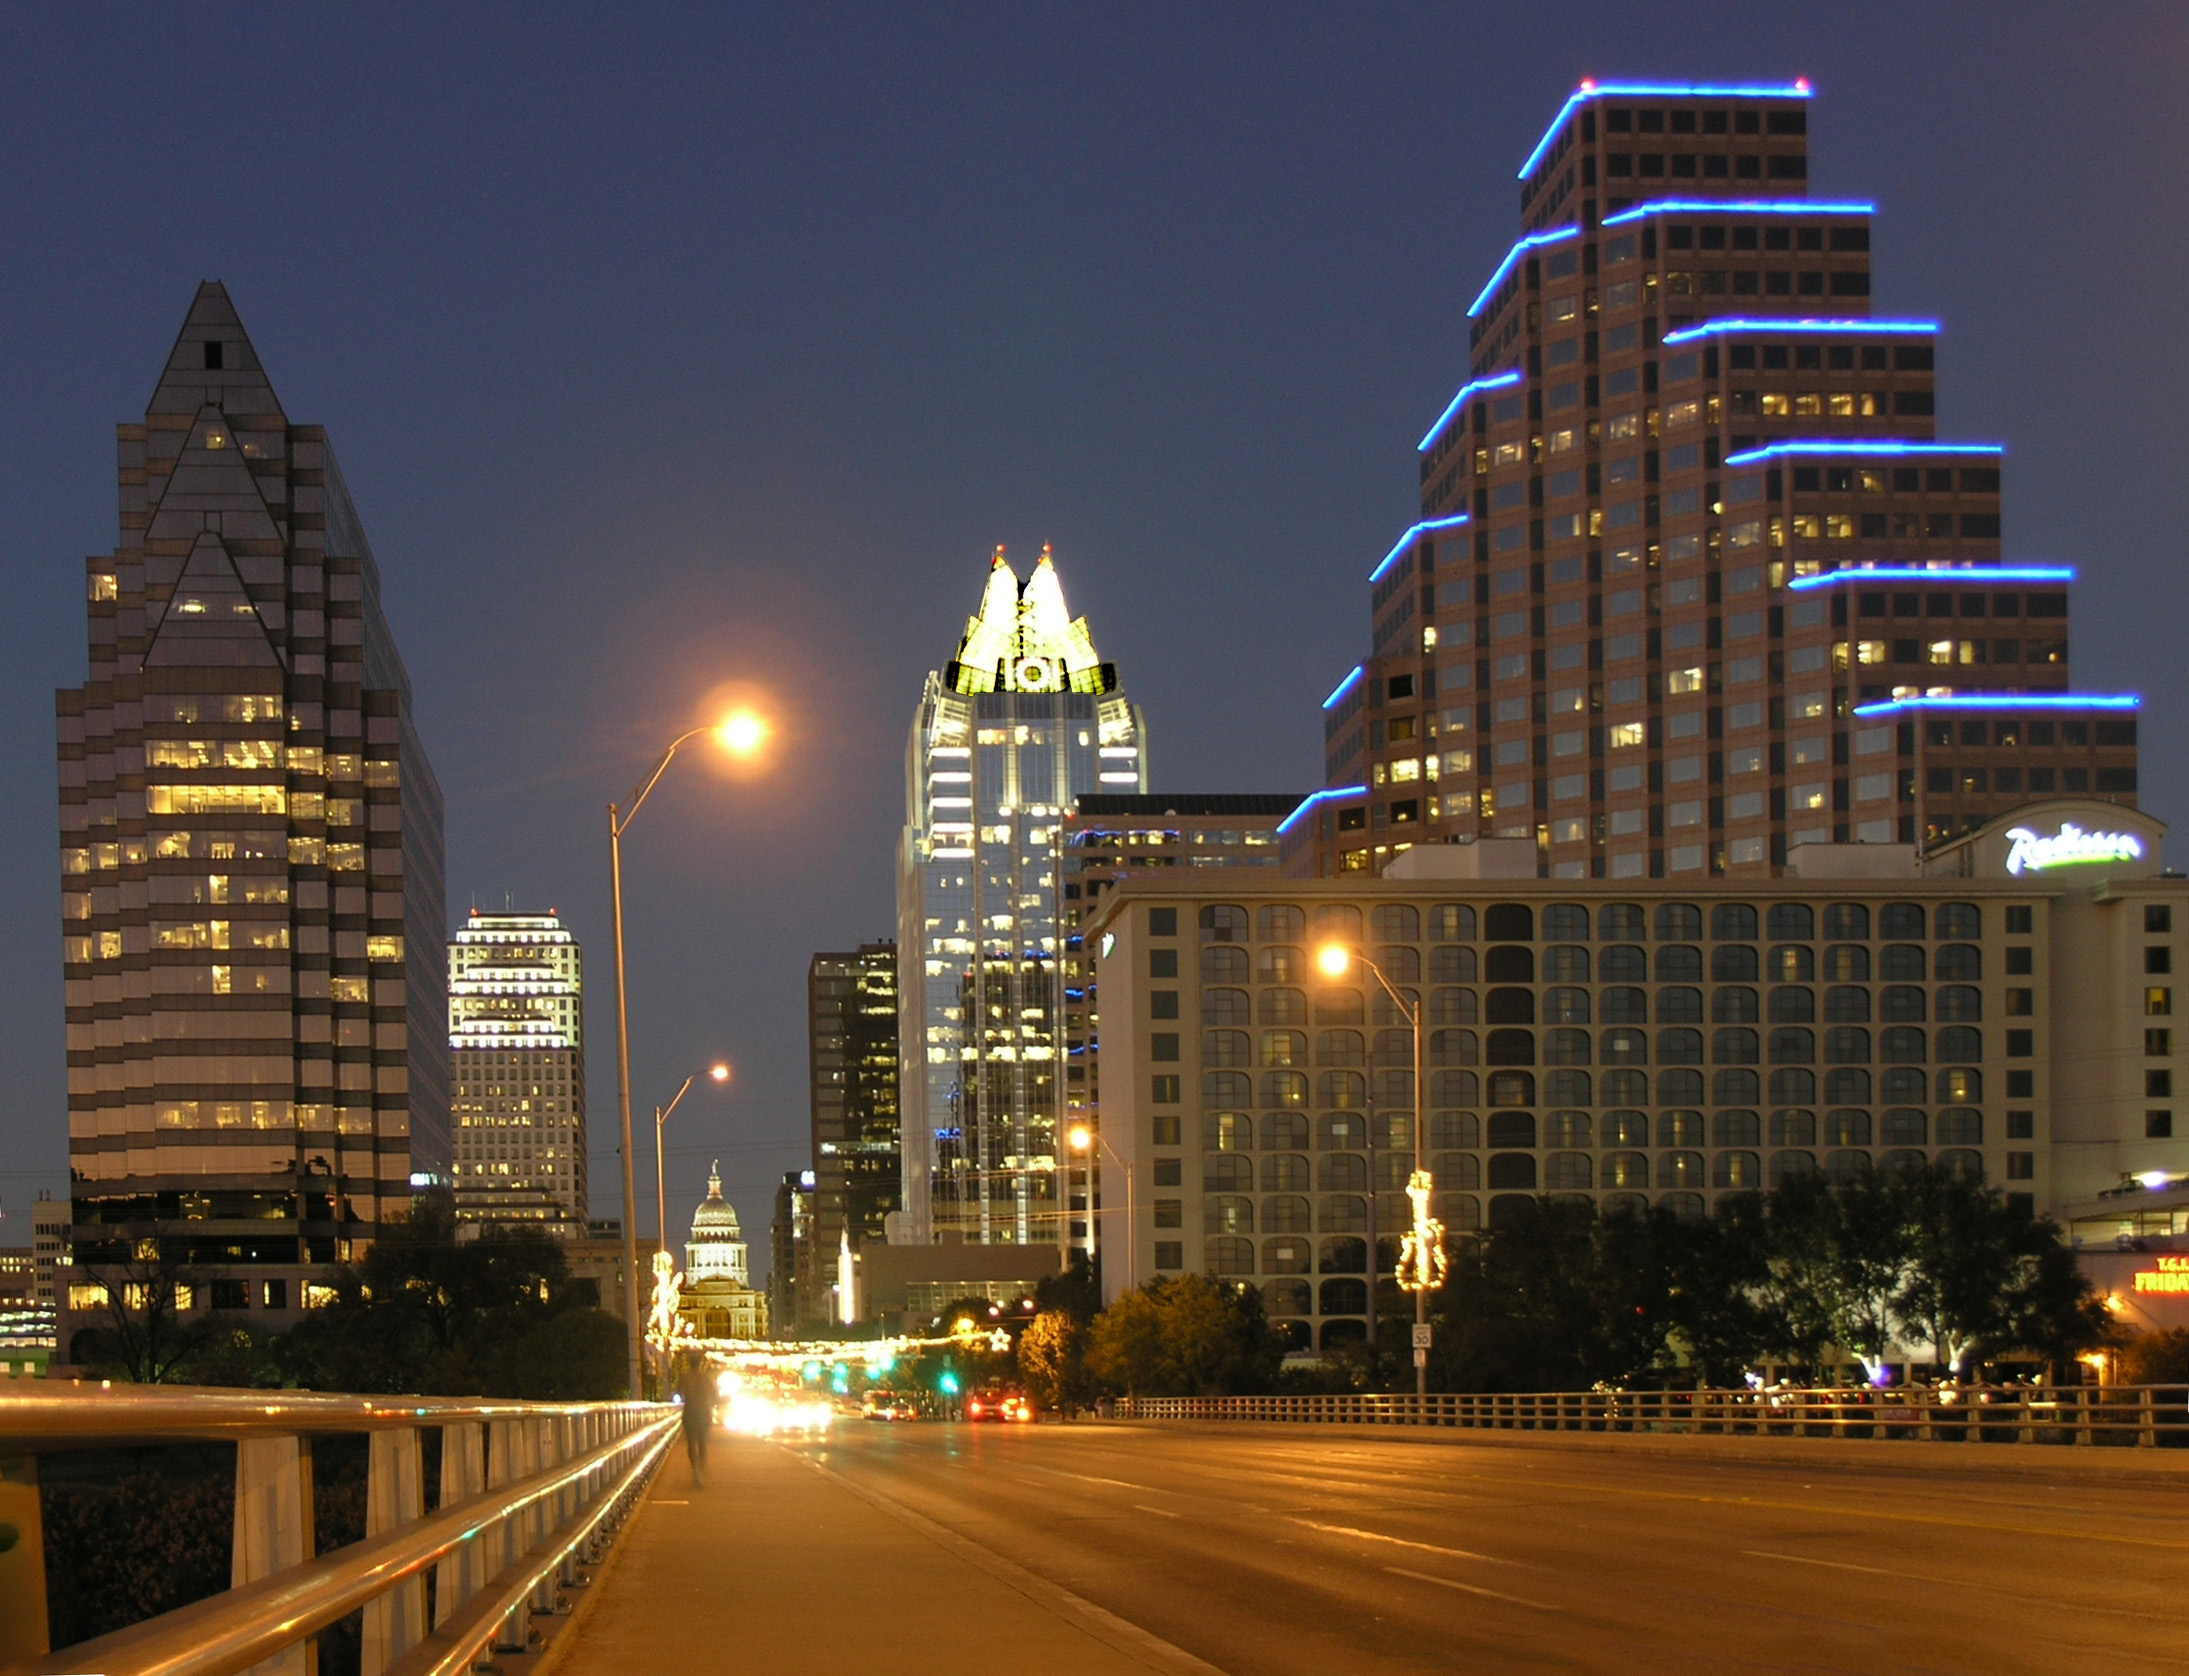 Image of Austin, Texas